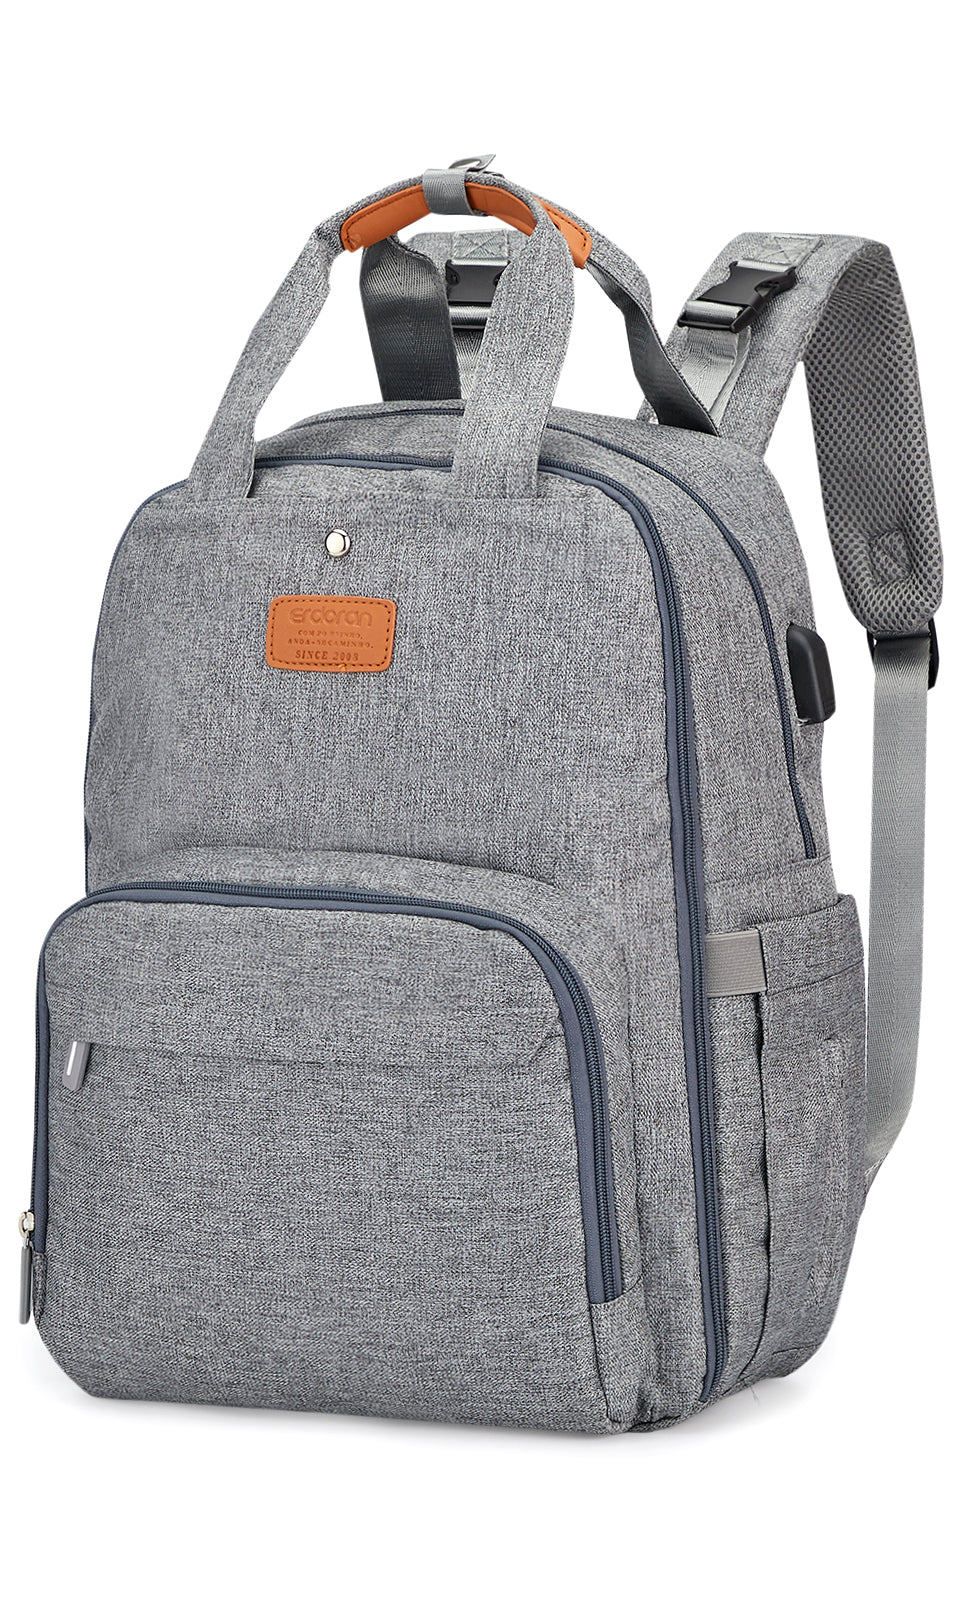 The Bambeado Baby Diaper Bag